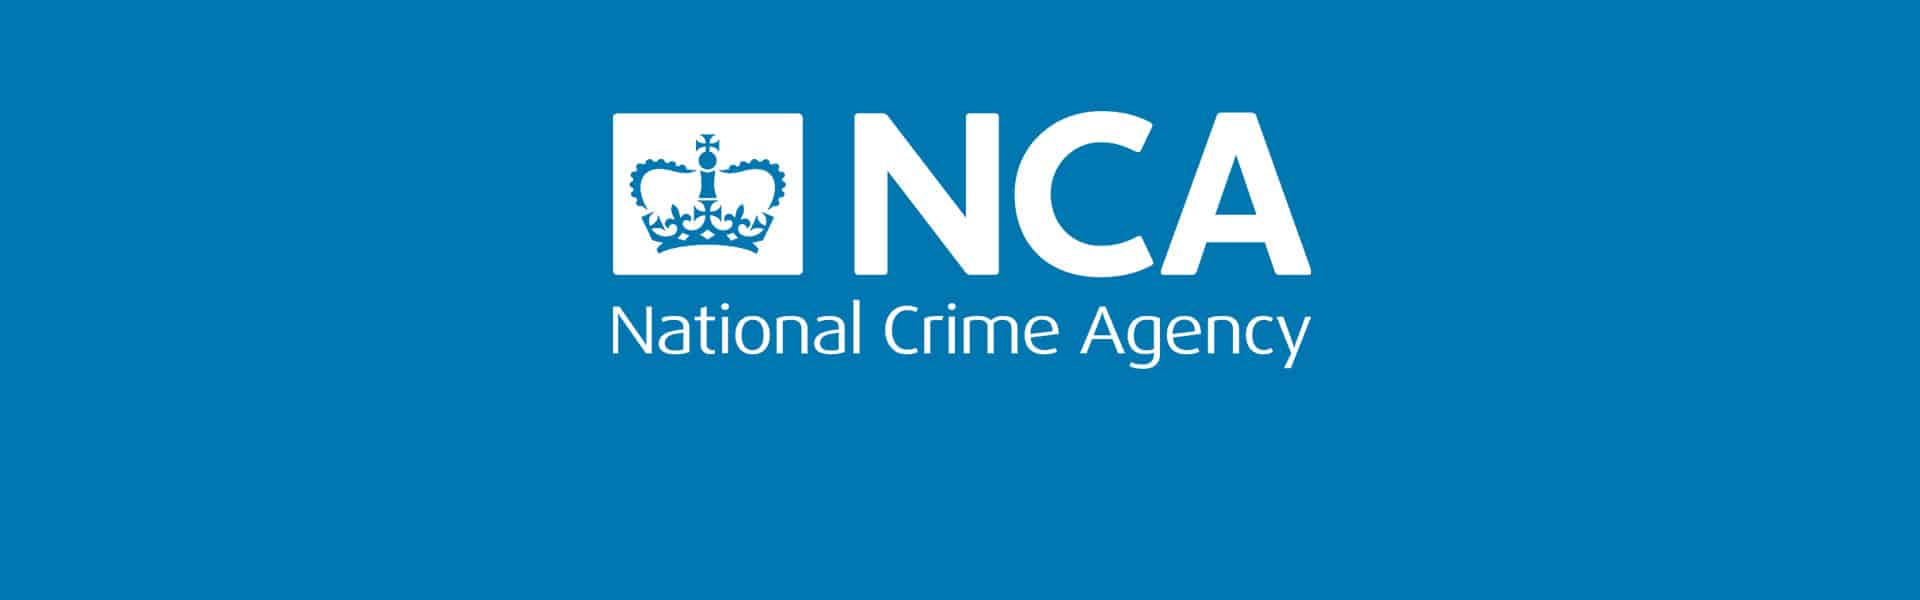 National Crime Agency Issues Malware Warning